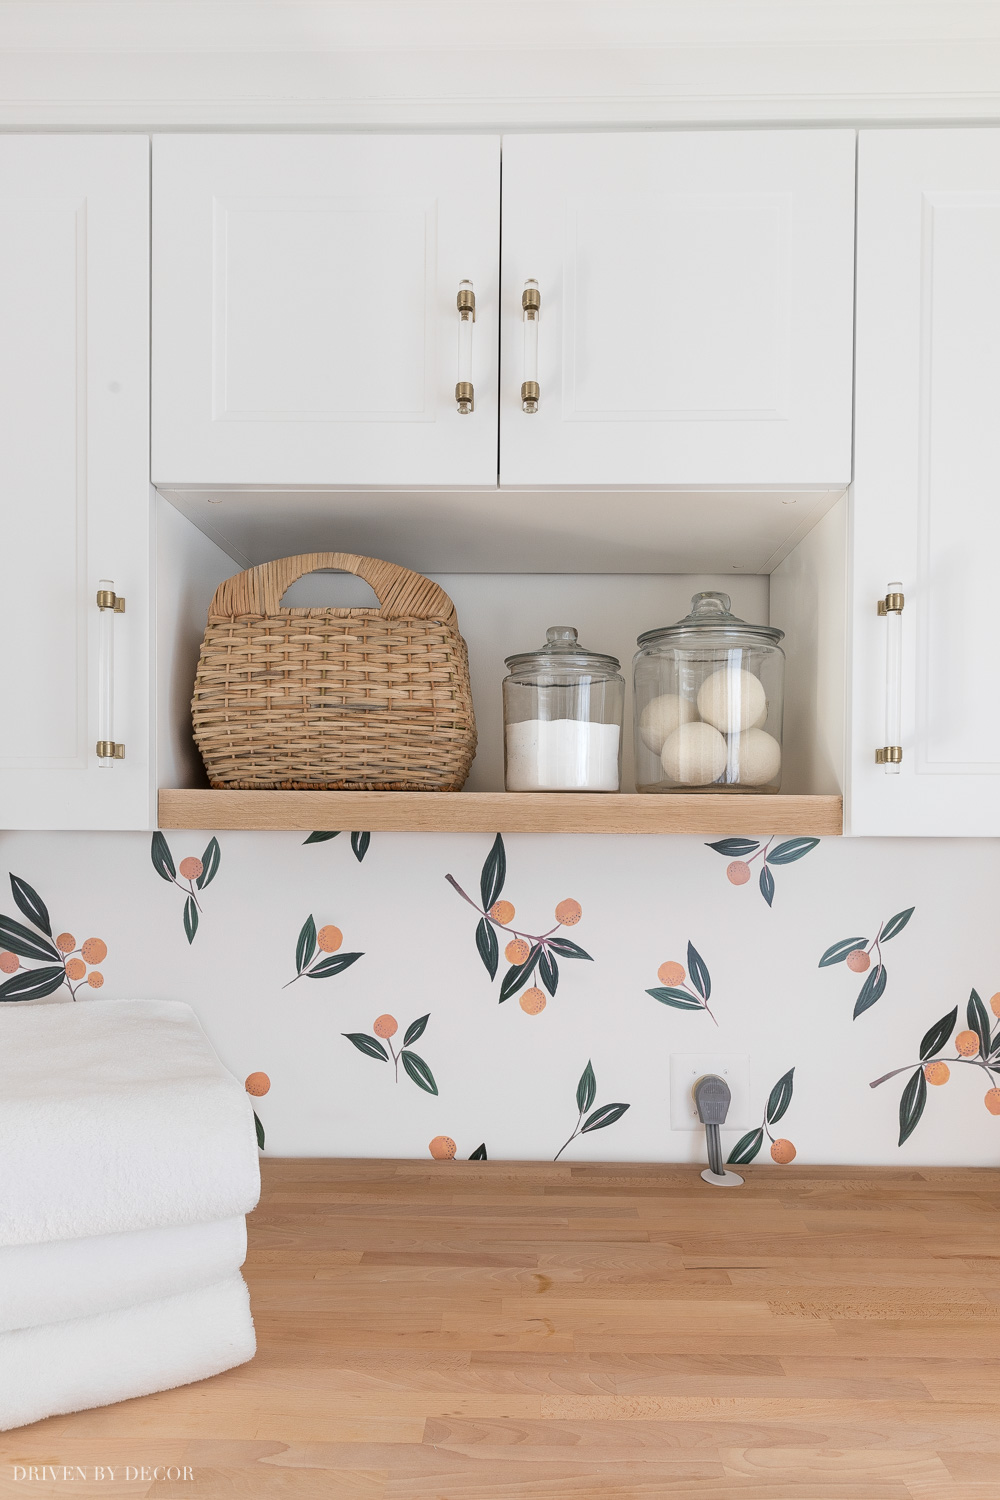 I added a wood shelf between the Ikea cabinets in our laundry room for open storage!